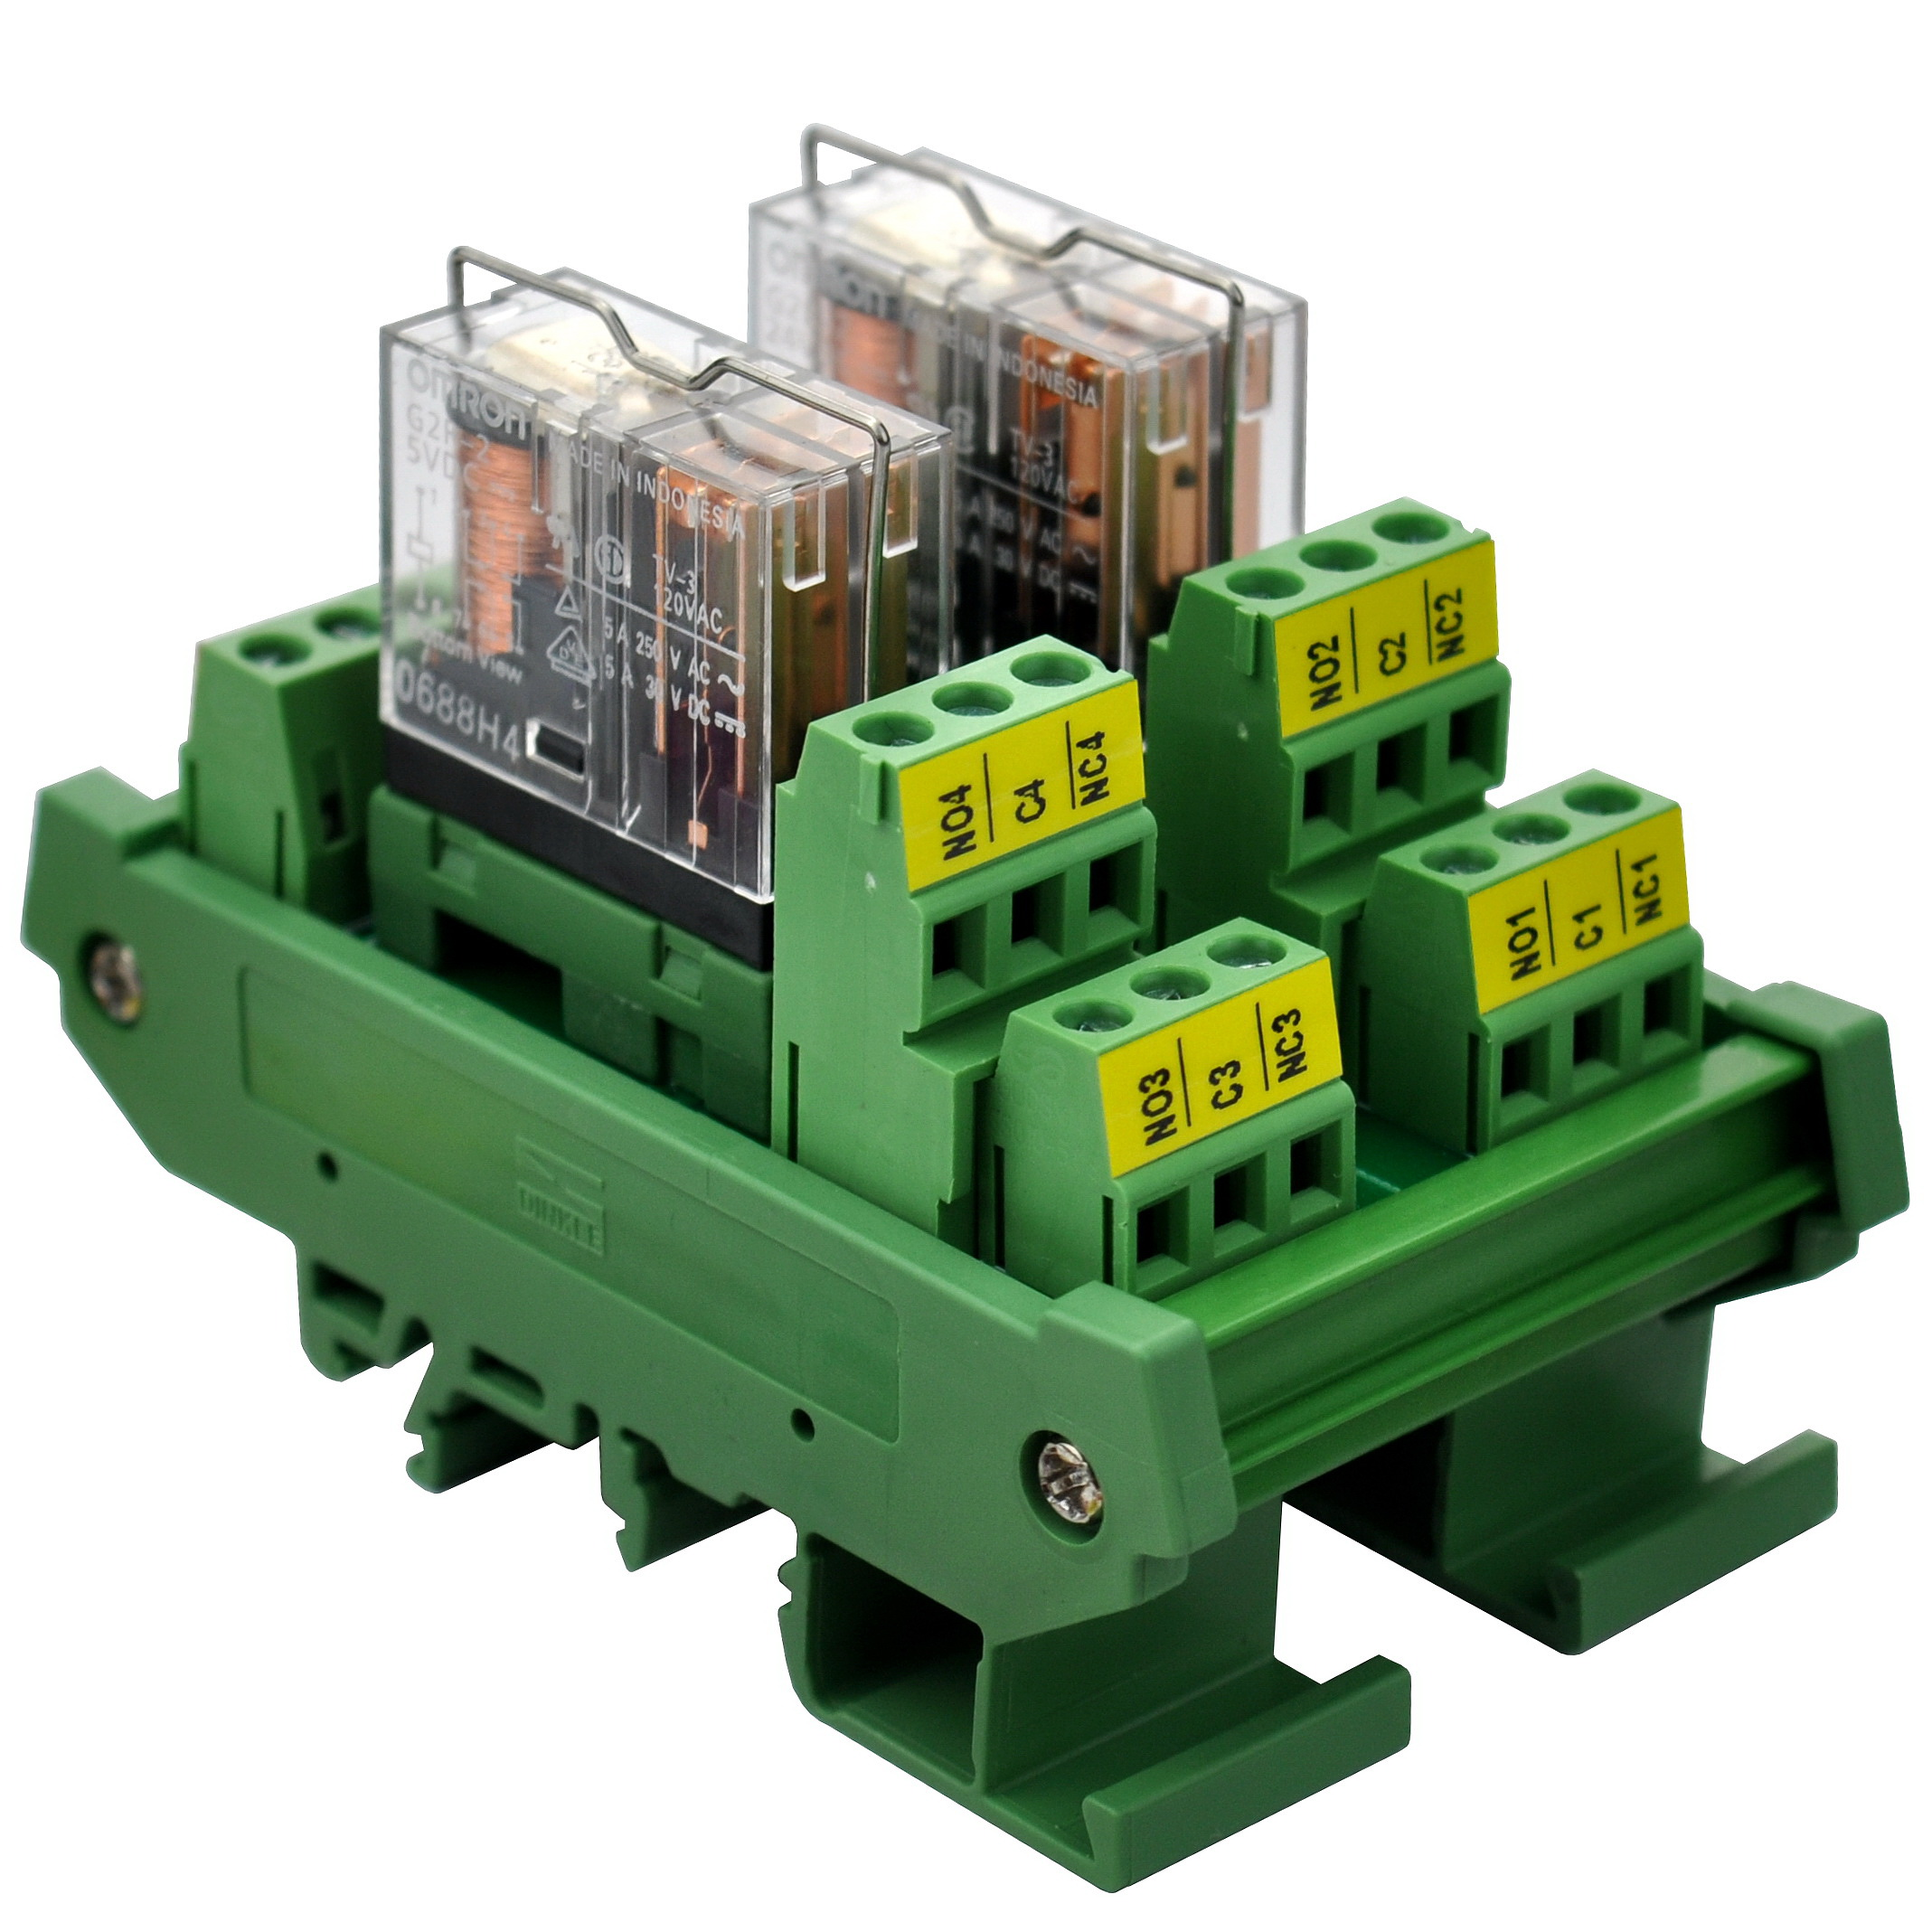 ELECTRONICS-SALON DIN Rail Mount AC/DC 5V Control 2 DPDT 5Amp Pluggable Power Relay Interface Module.